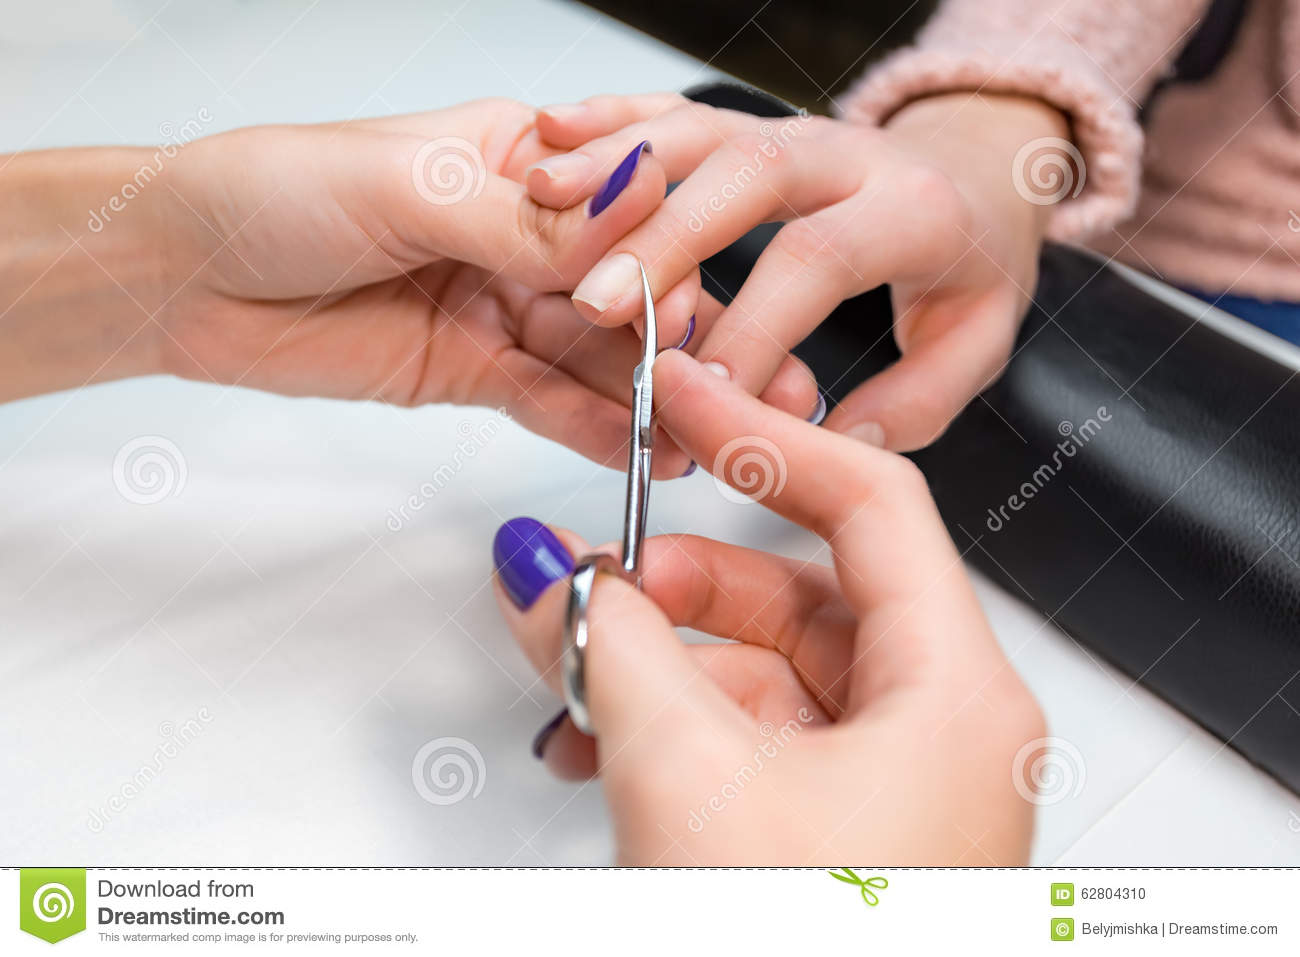 Cuticle Clipping, Cutting Skins Manicure Treatment Stock Photo ...